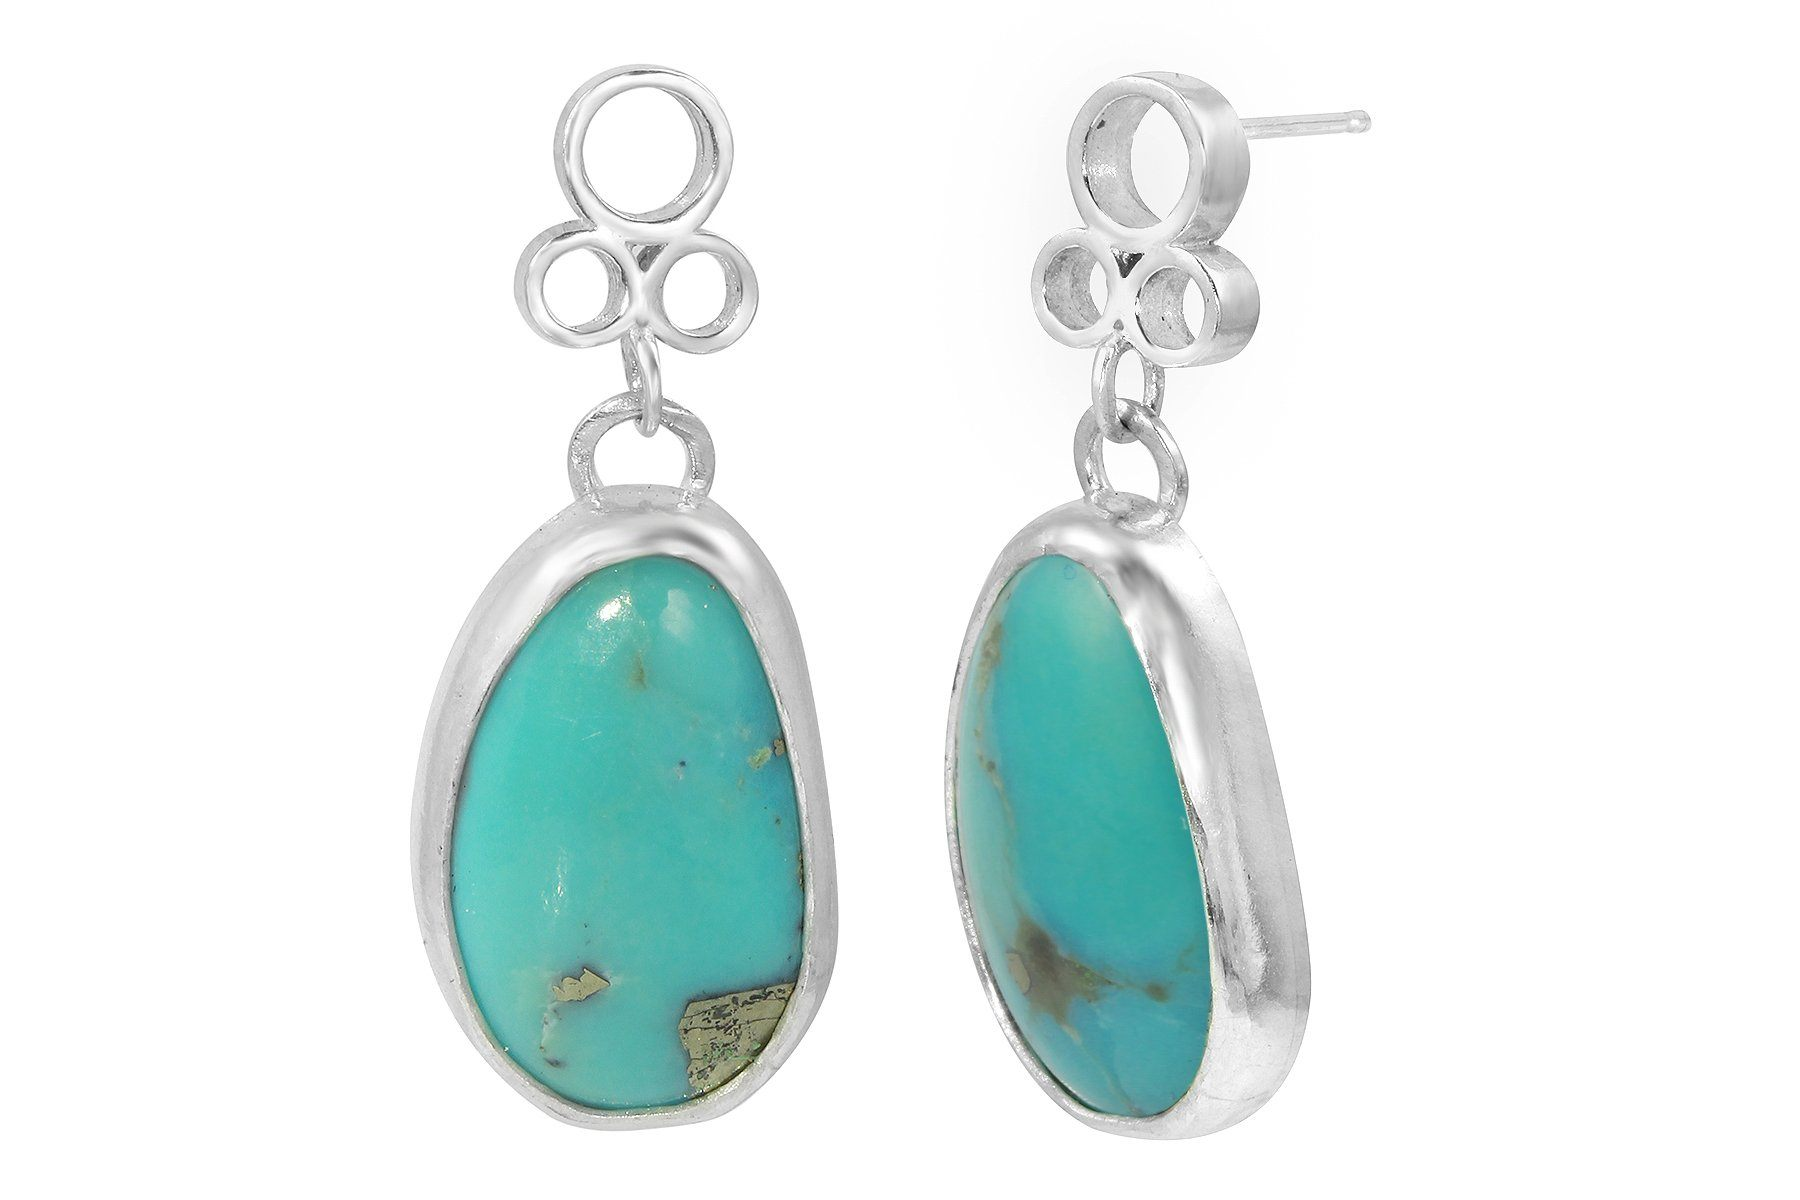 Turquoise with pyrite one of a kind earrings